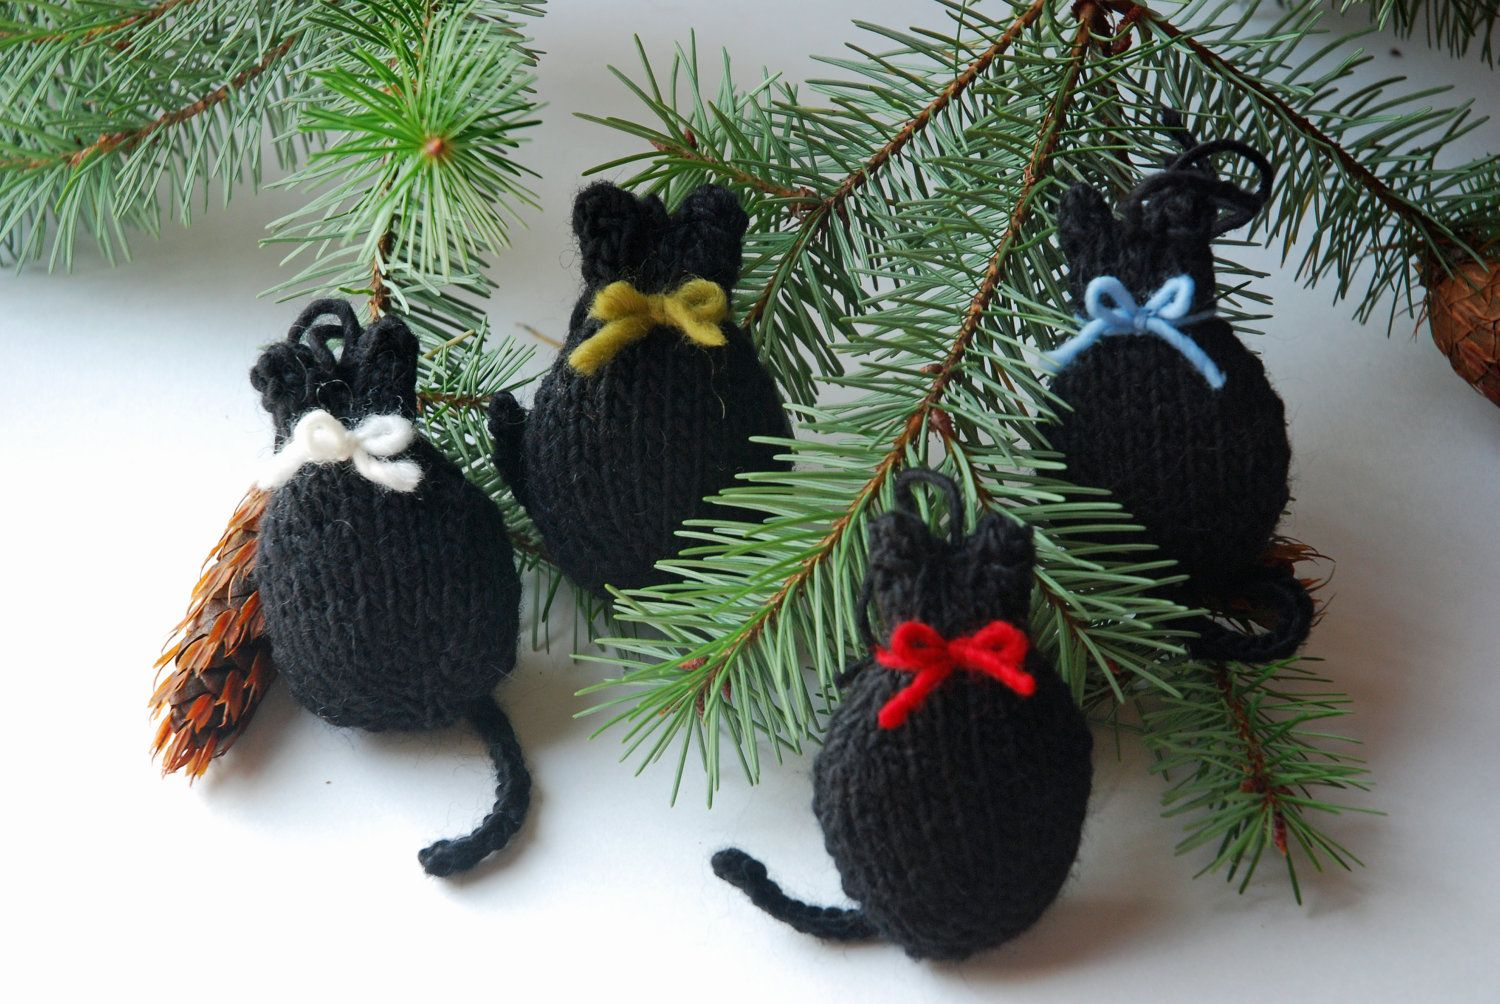 Knitted Black Cat Folk Art Christmas Tree Ornament. 7.50